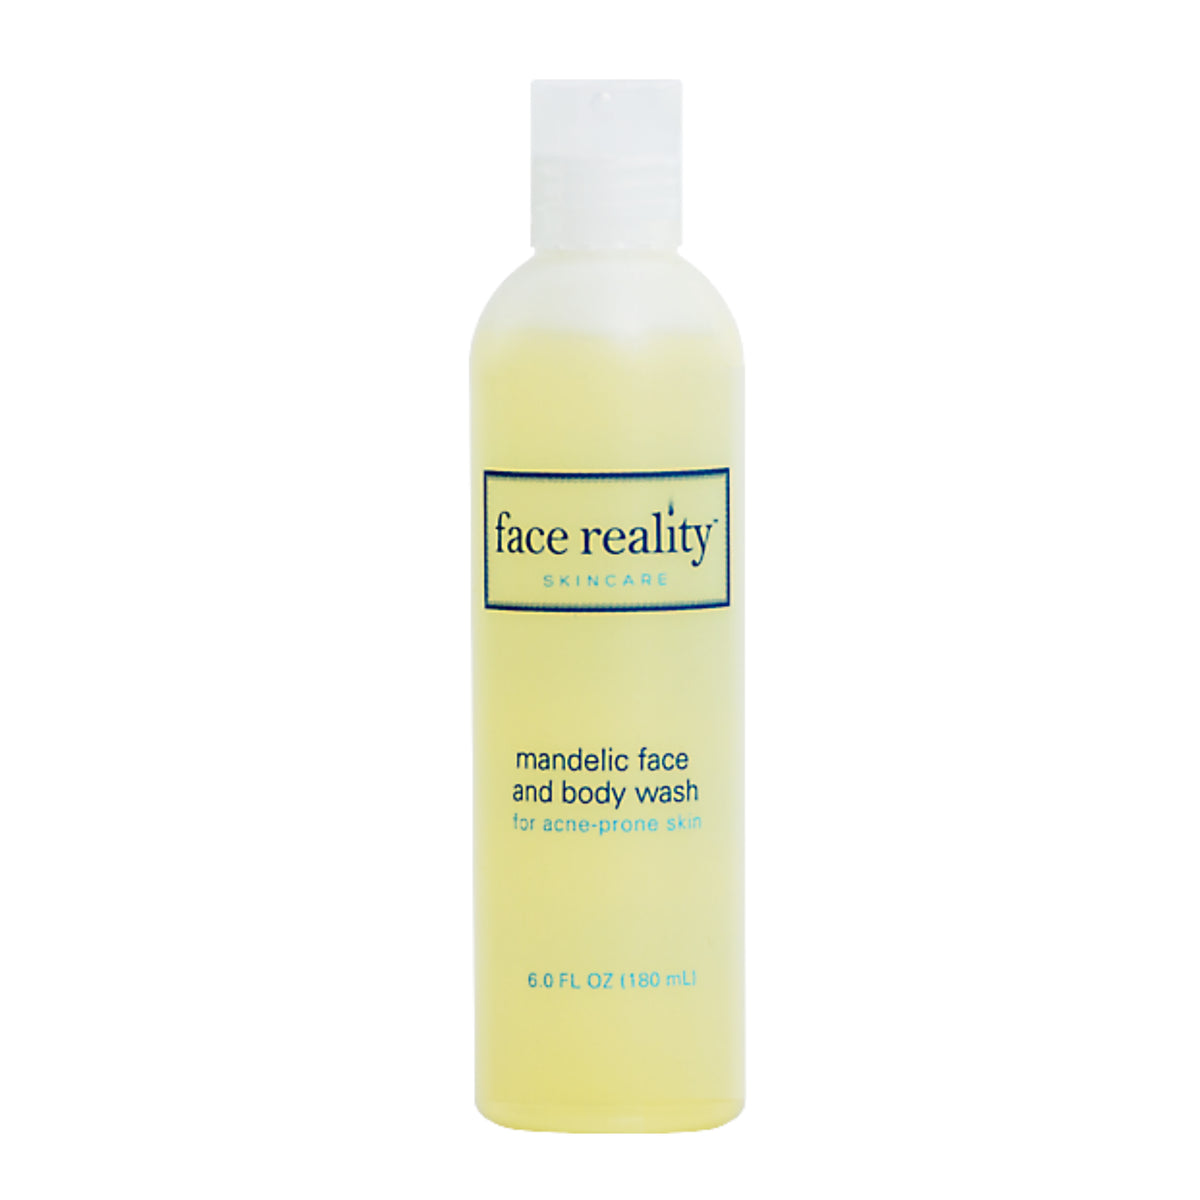 FACE REALITY - Mandelic Face and Body Wash - Beauty Nook